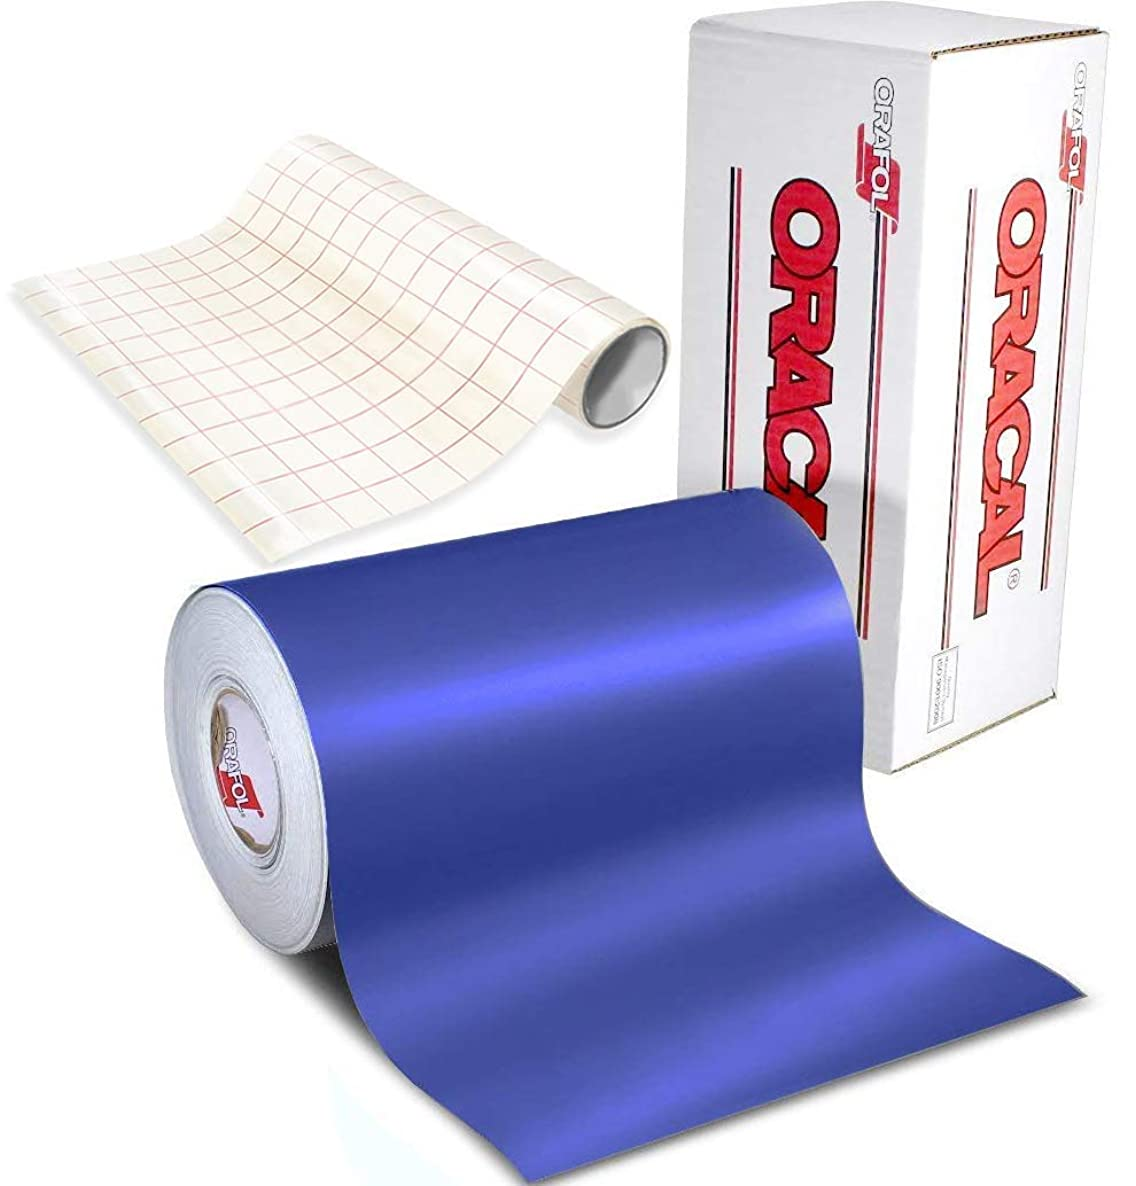 ORACAL 631 Matte Brilliant Blue Adhesive Craft Vinyl for Cameo, Cricut & Silhouette Including Free 12